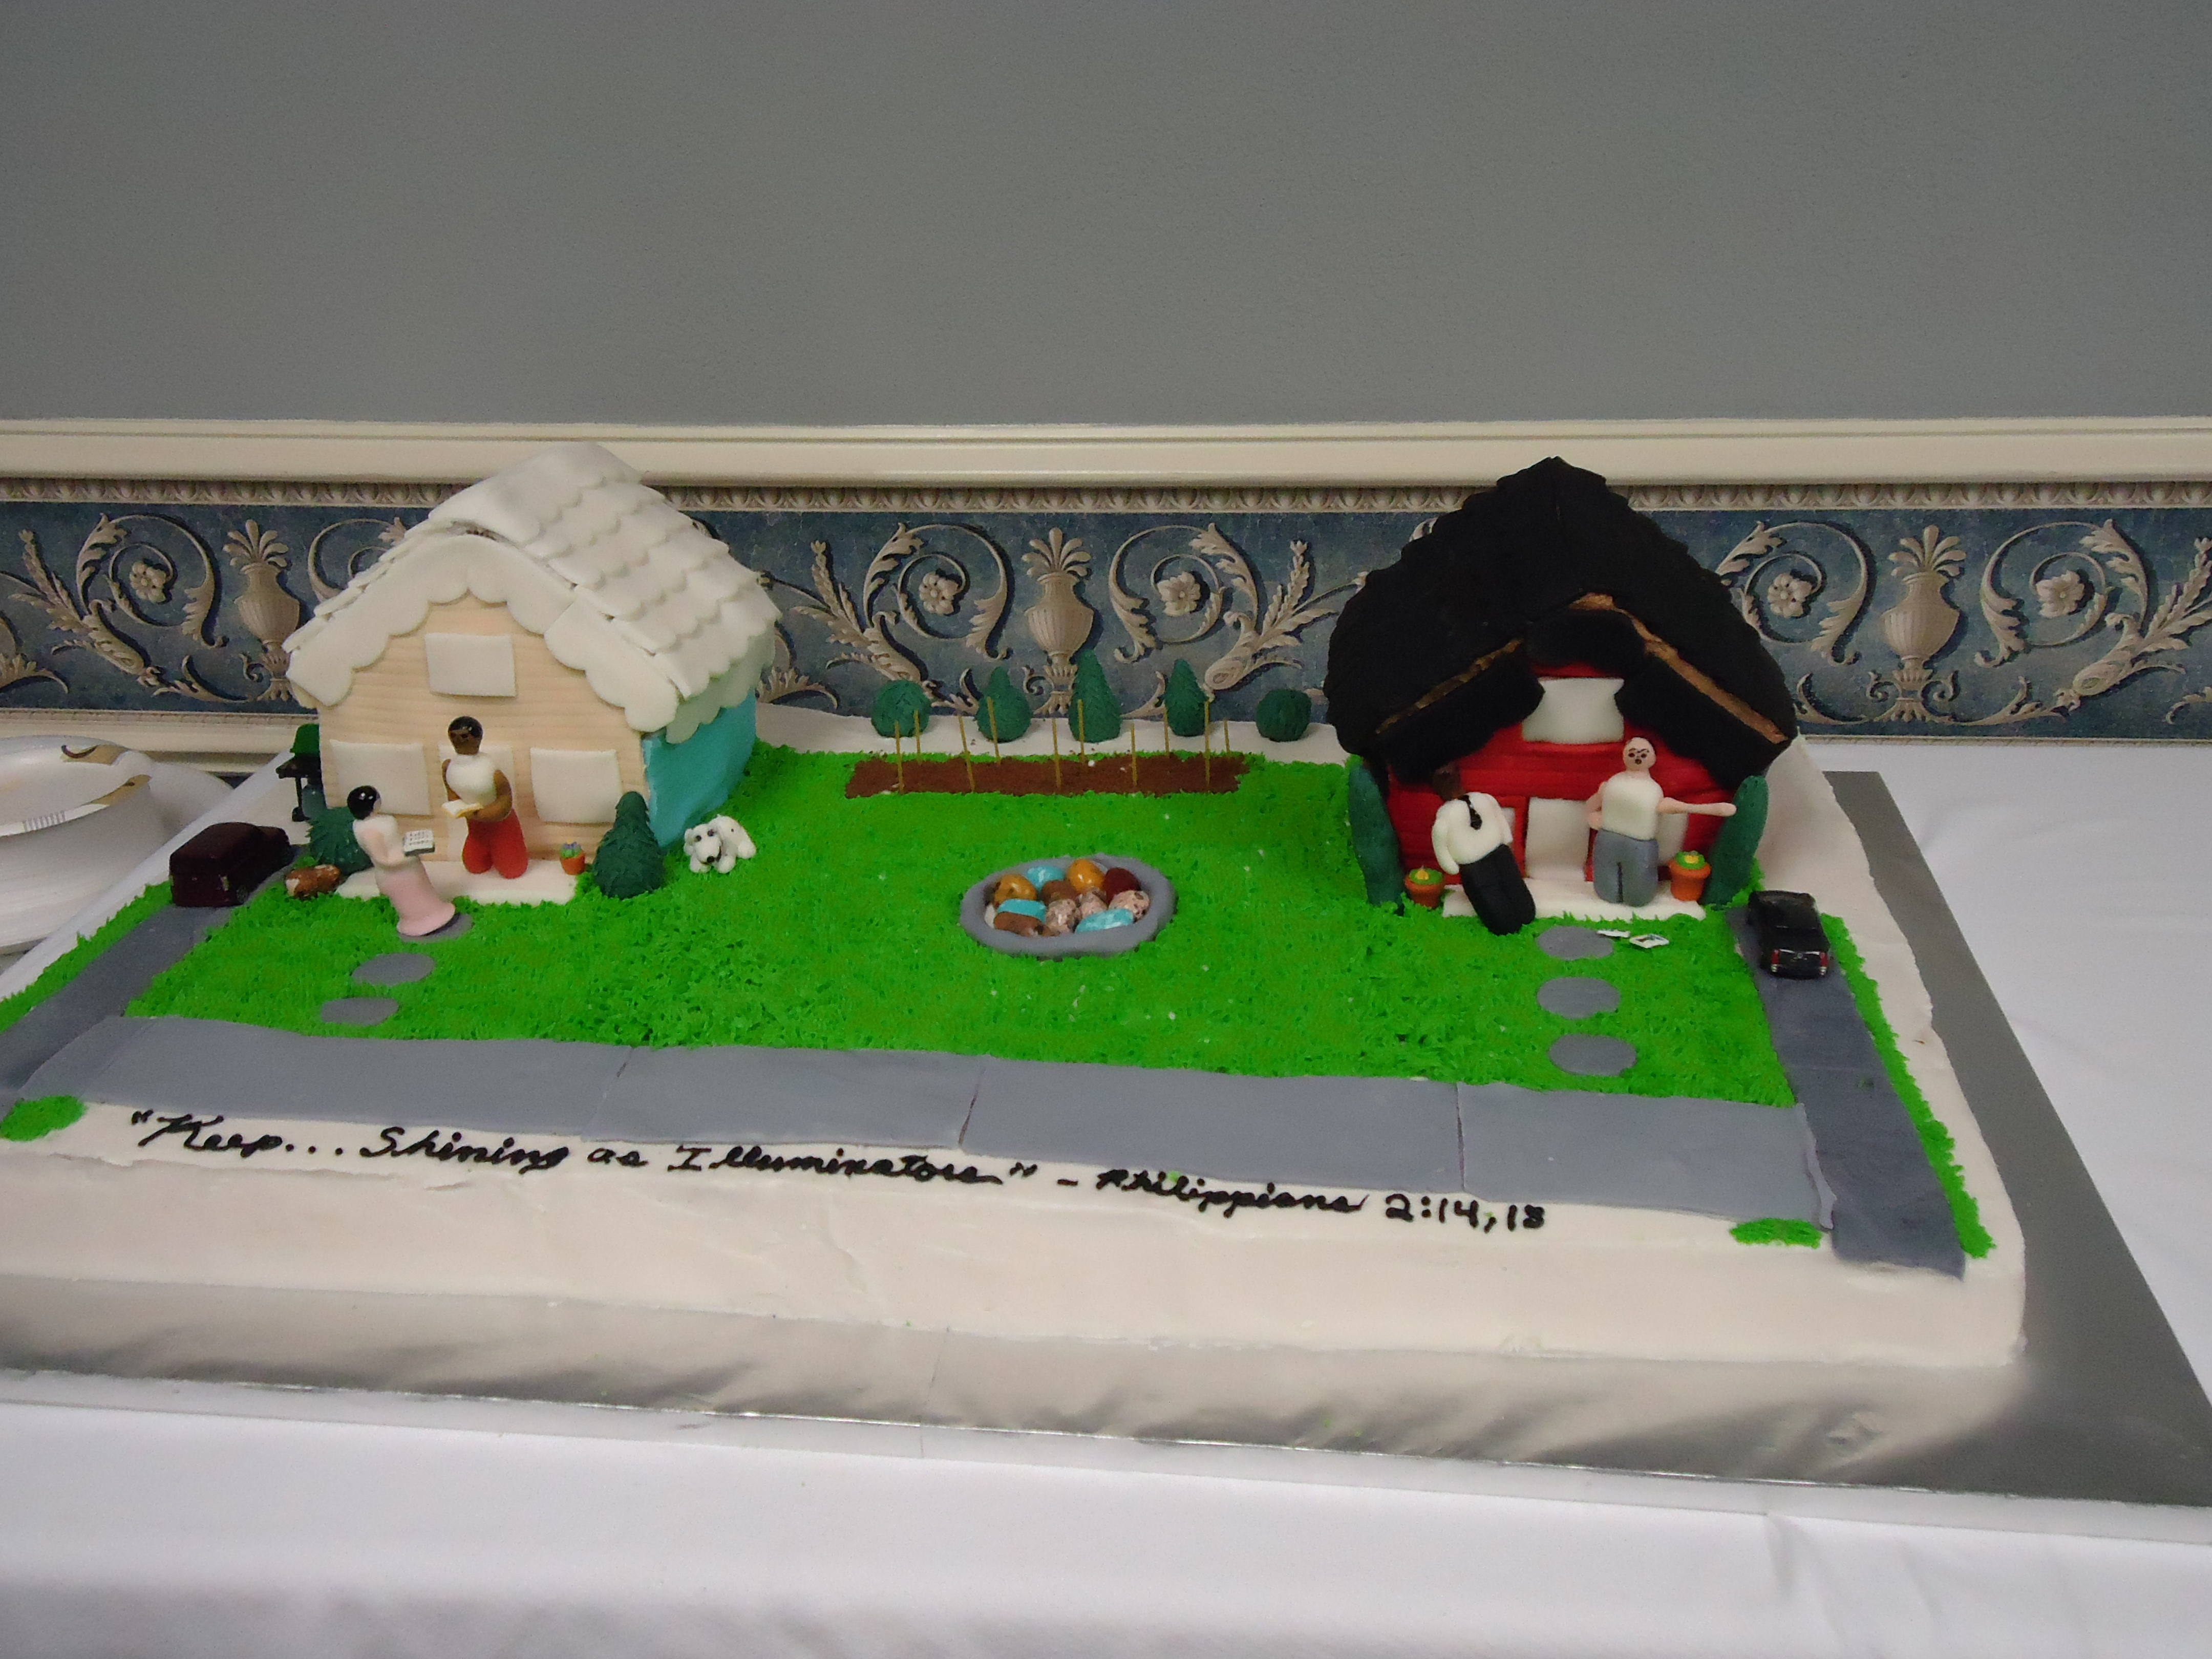 Cake depicting the good and bad experiences of preaching from house to house as one of Jehovah's Witnesses. The room was so hot from the chafing dishes of the other food that the fondant starting sliding off the cake and my figures kept falling over....